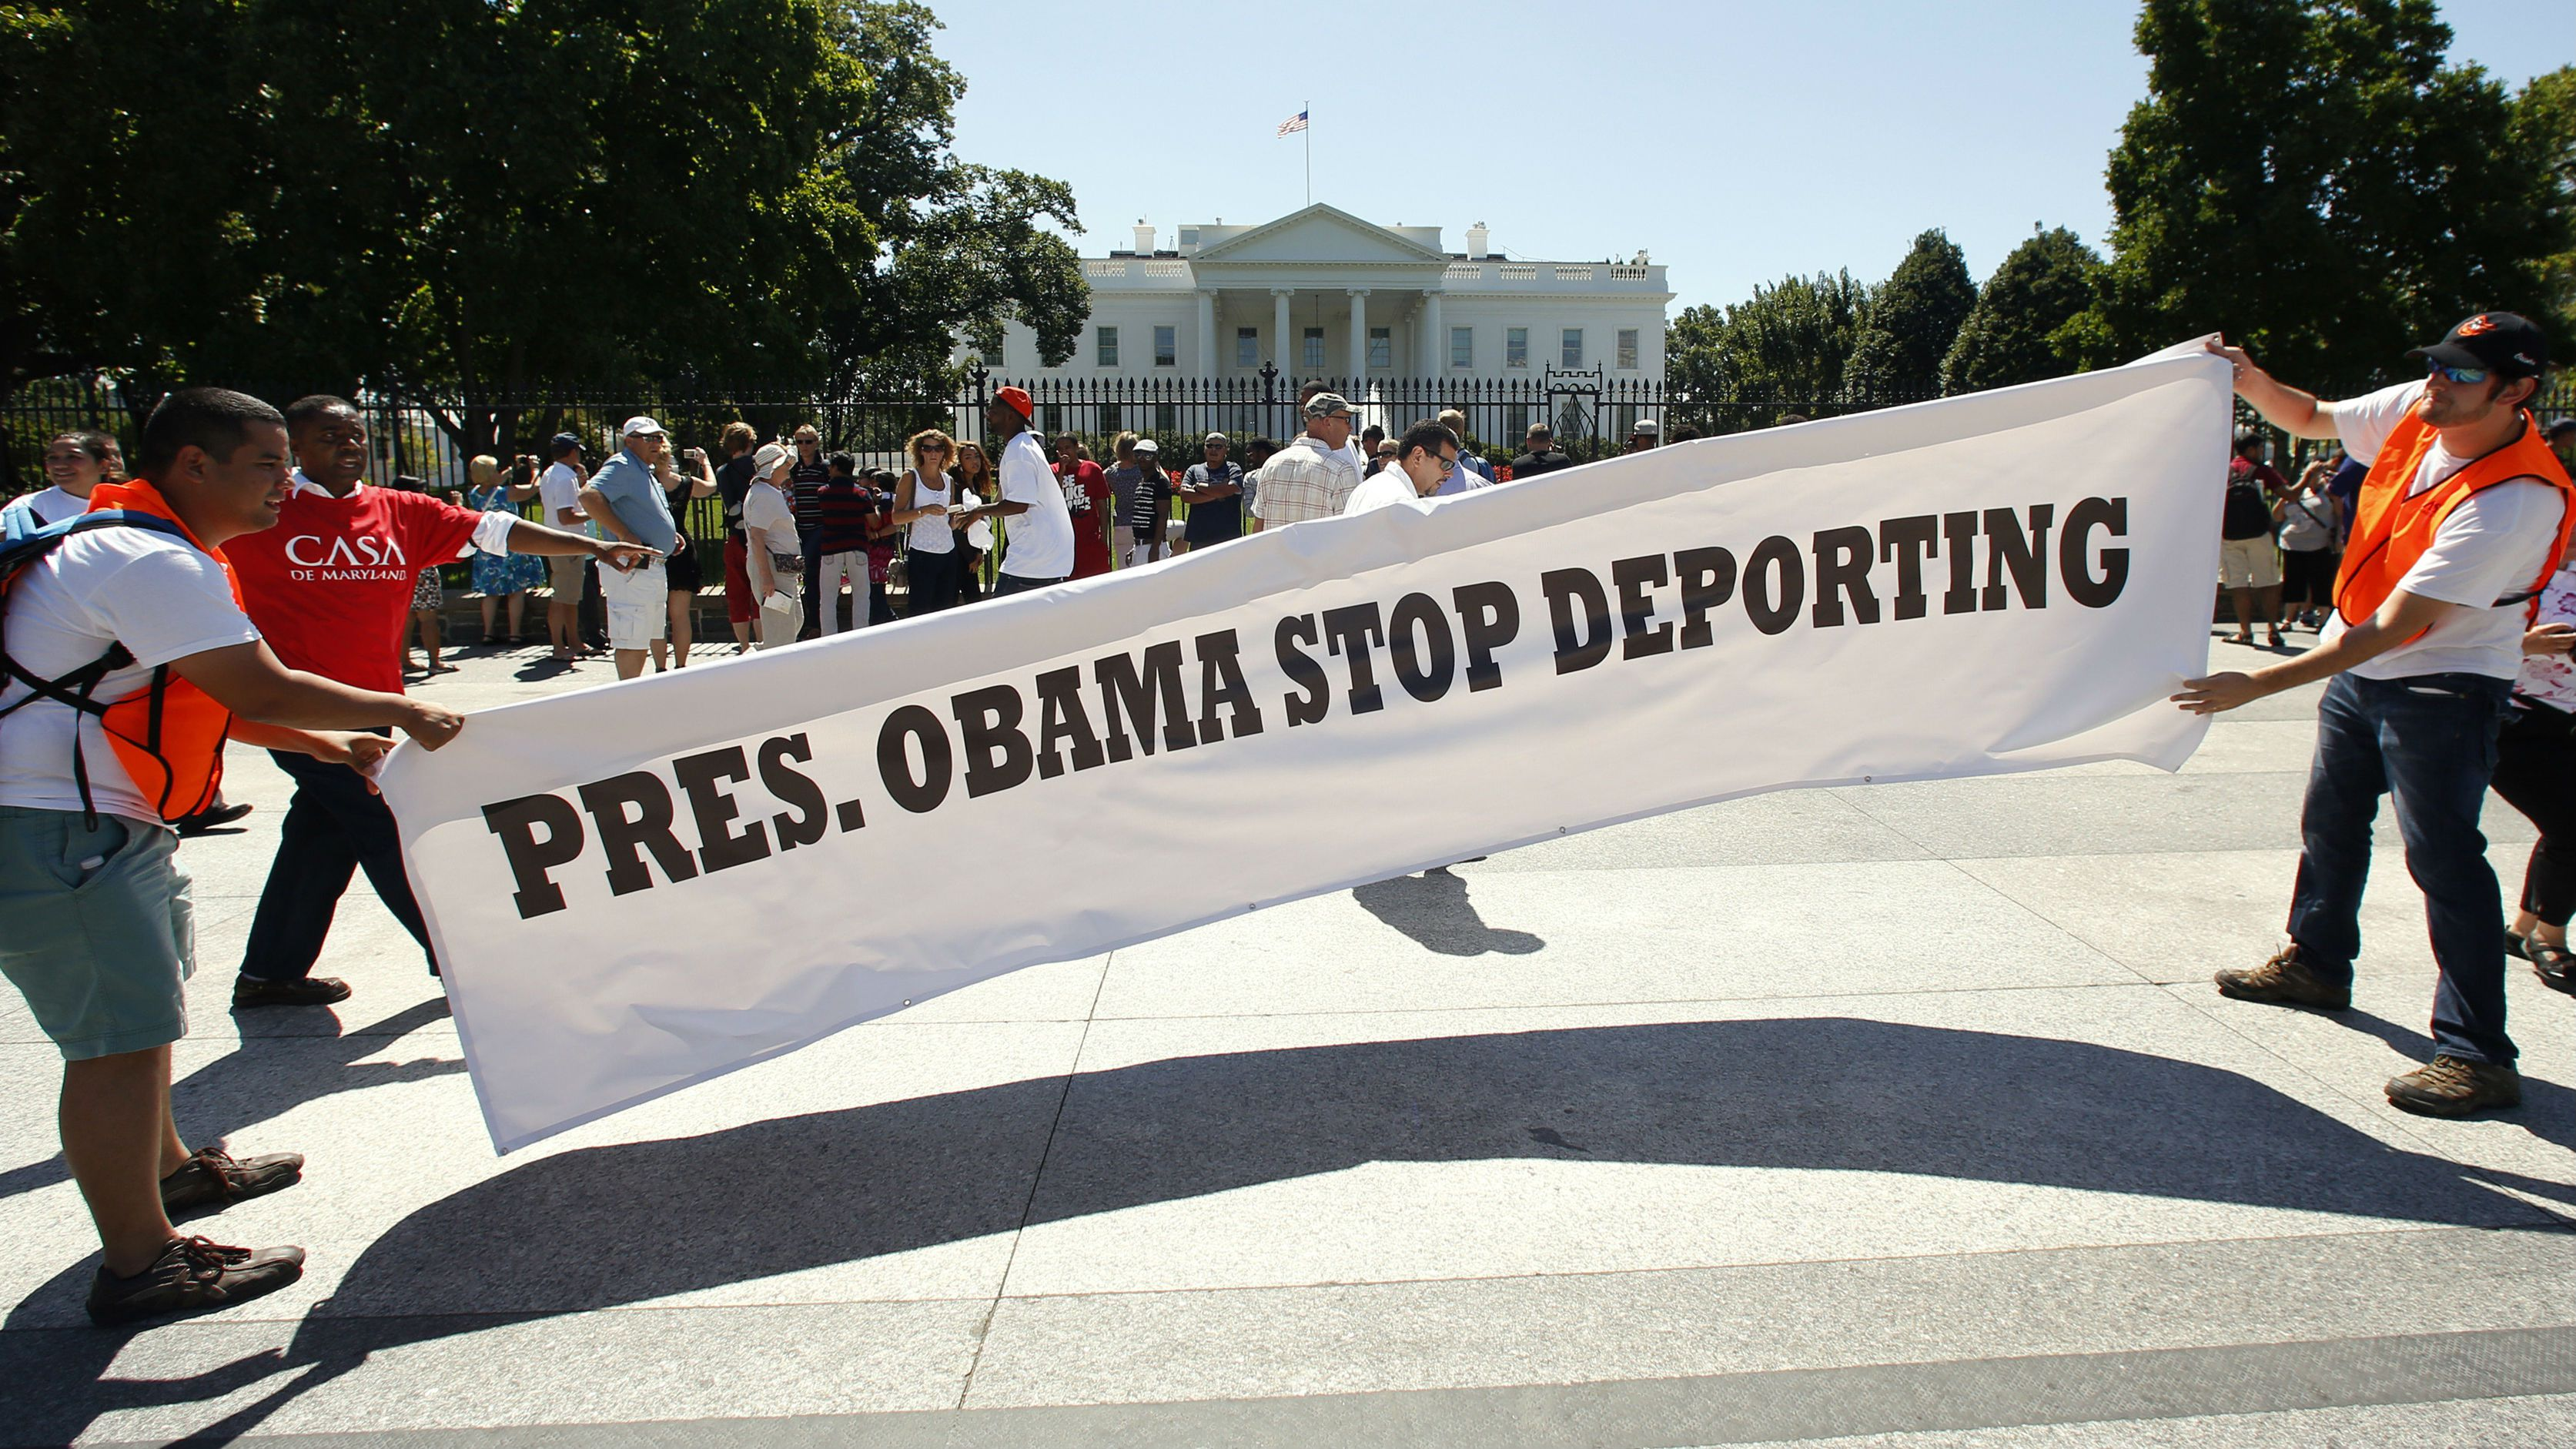 Anti-deportation protesters unfurl a sign in front of the White House in Washington August 28, 2014. The protest, organized by CASA, a non-profit organization helping immigrants, called on President Obama to stop deporting undocumented workers, parents and children.